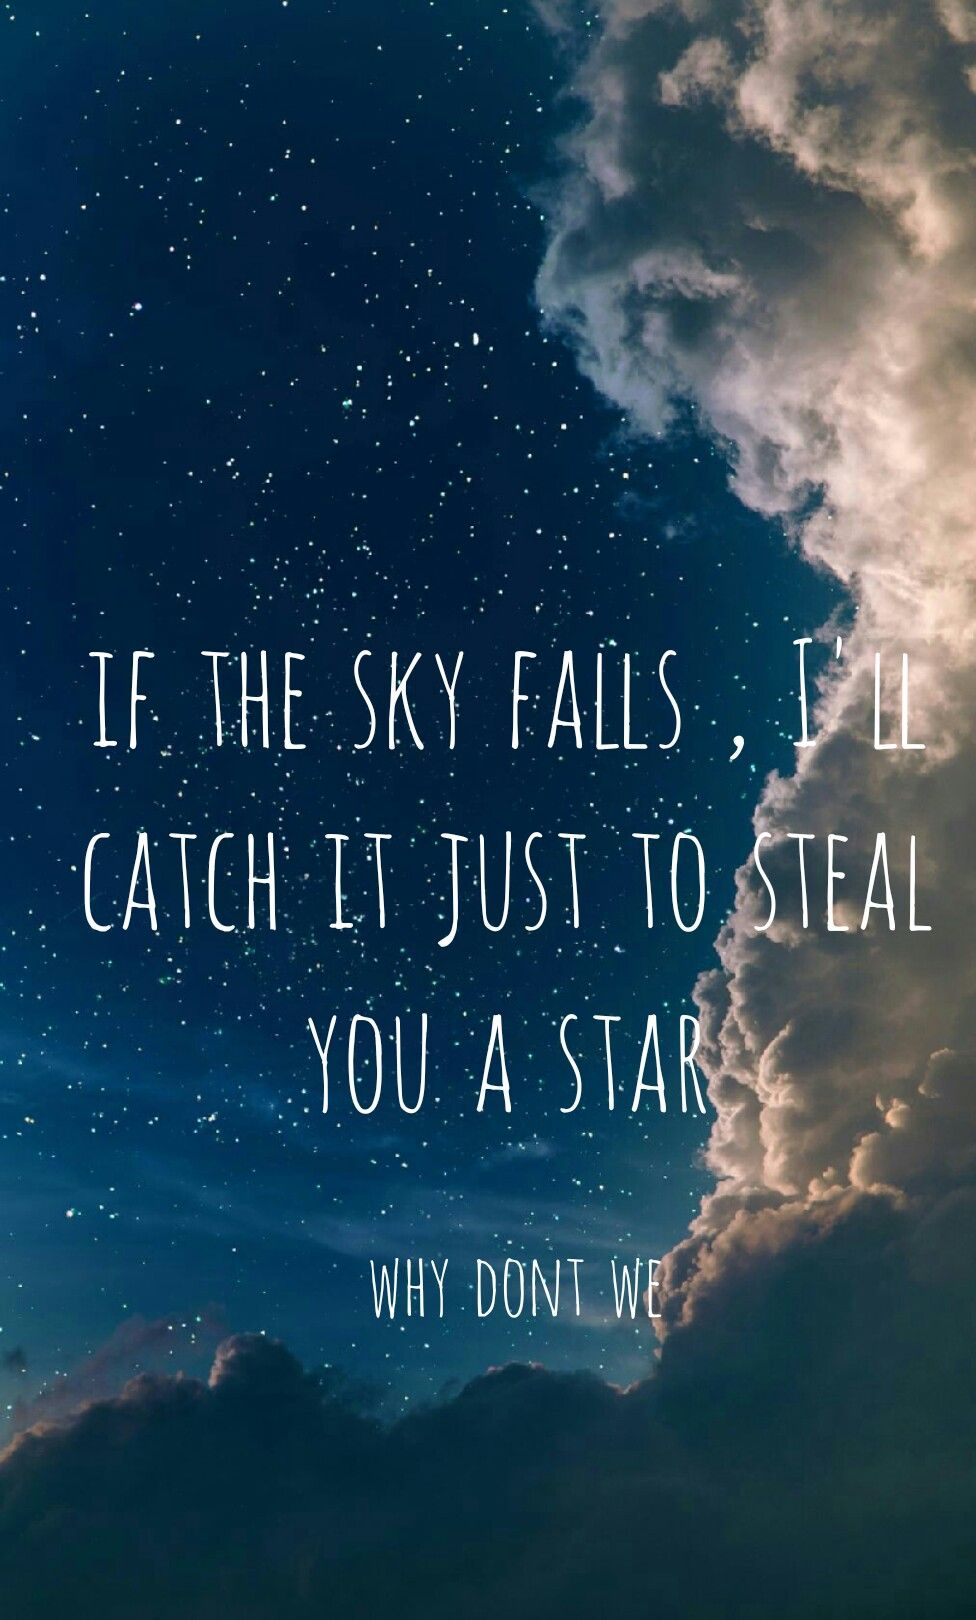 Why Dont We Wallpaper Samsung Wallpaper Lyrics From Why